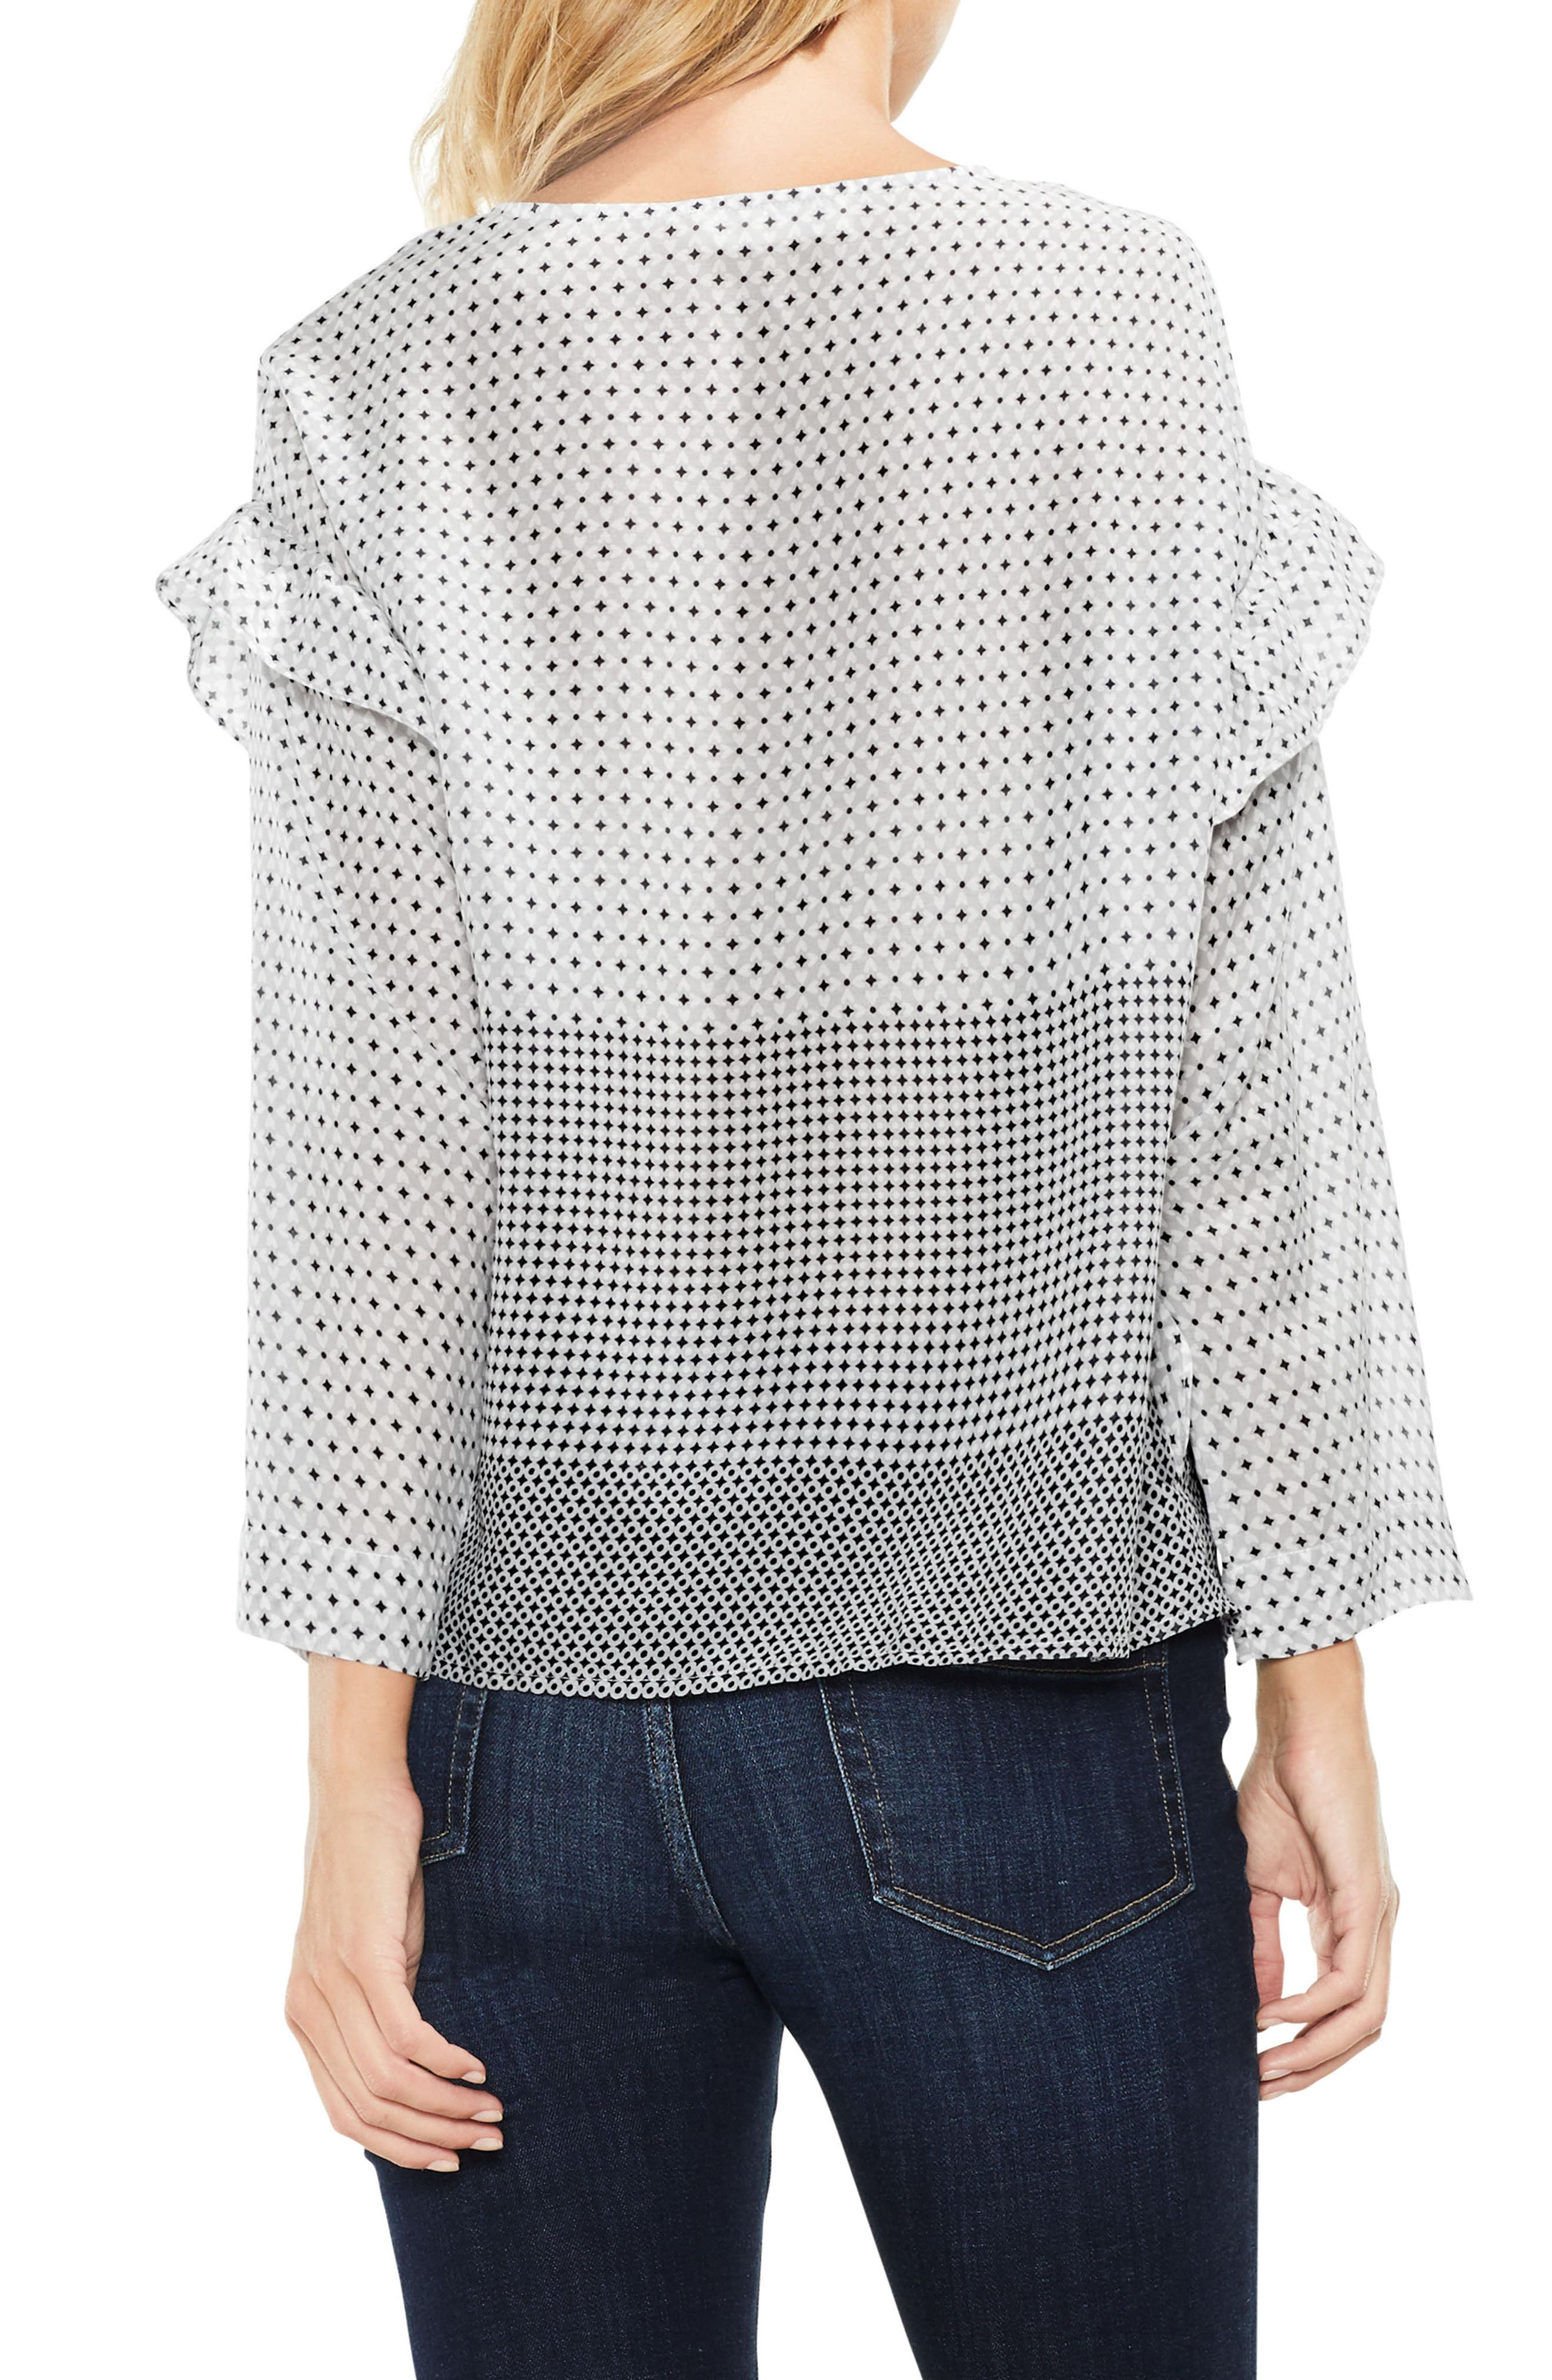 Two by VInce Camuto Quiet Tile Border Ruffle Top,                             Alternate thumbnail 2, color,                             Magnet